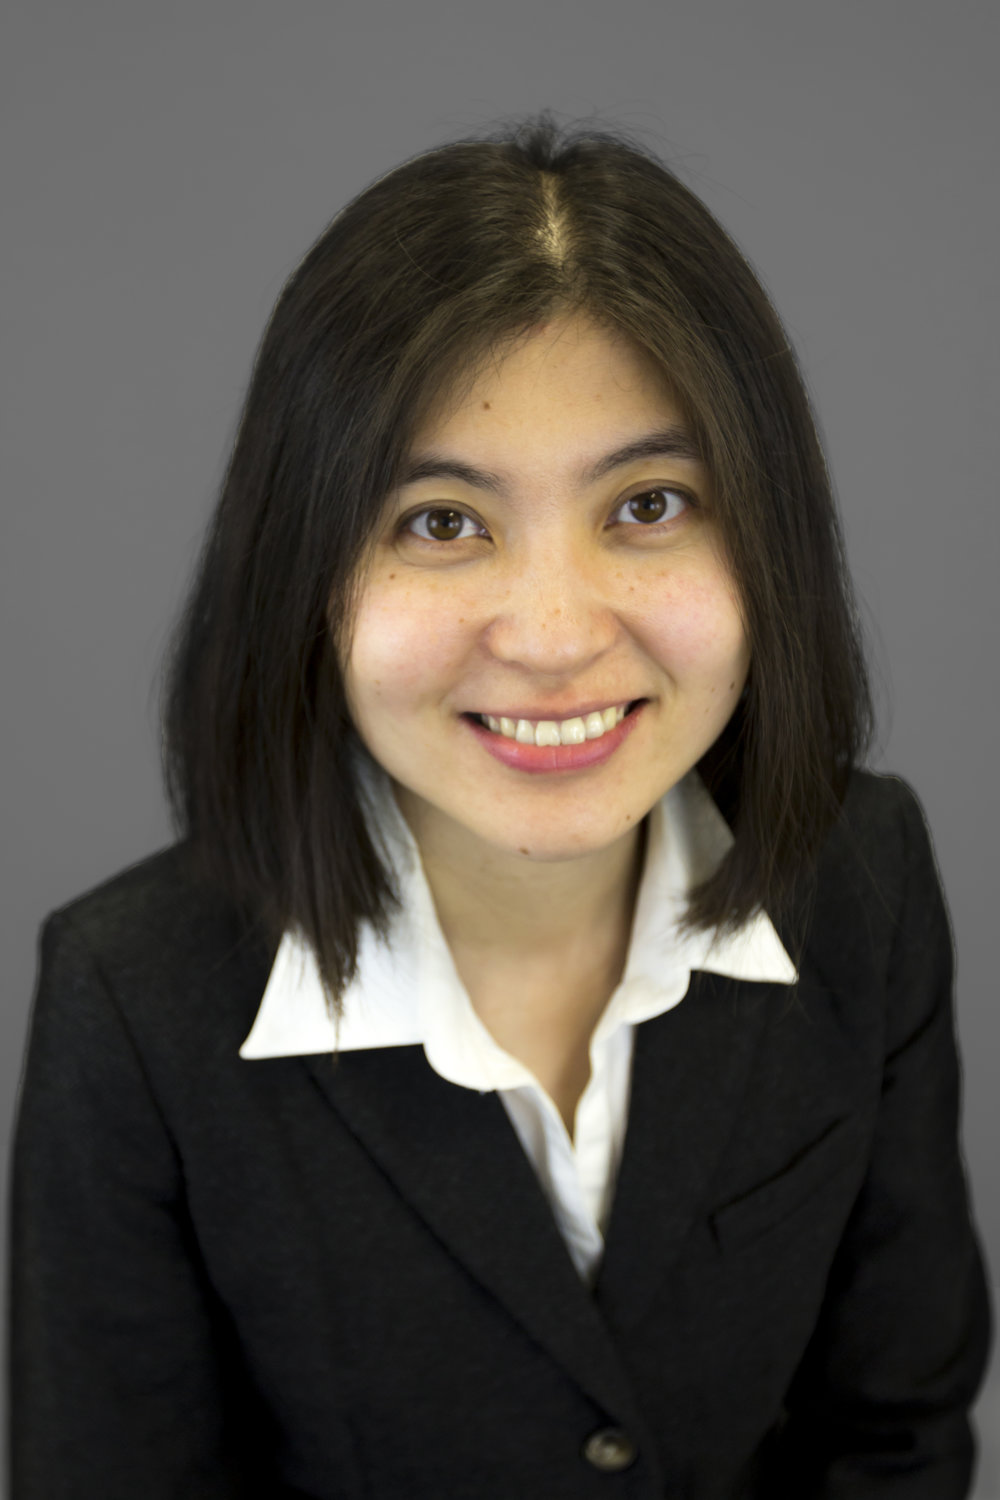 Jie jia, ph.d licensed clinical psychologist